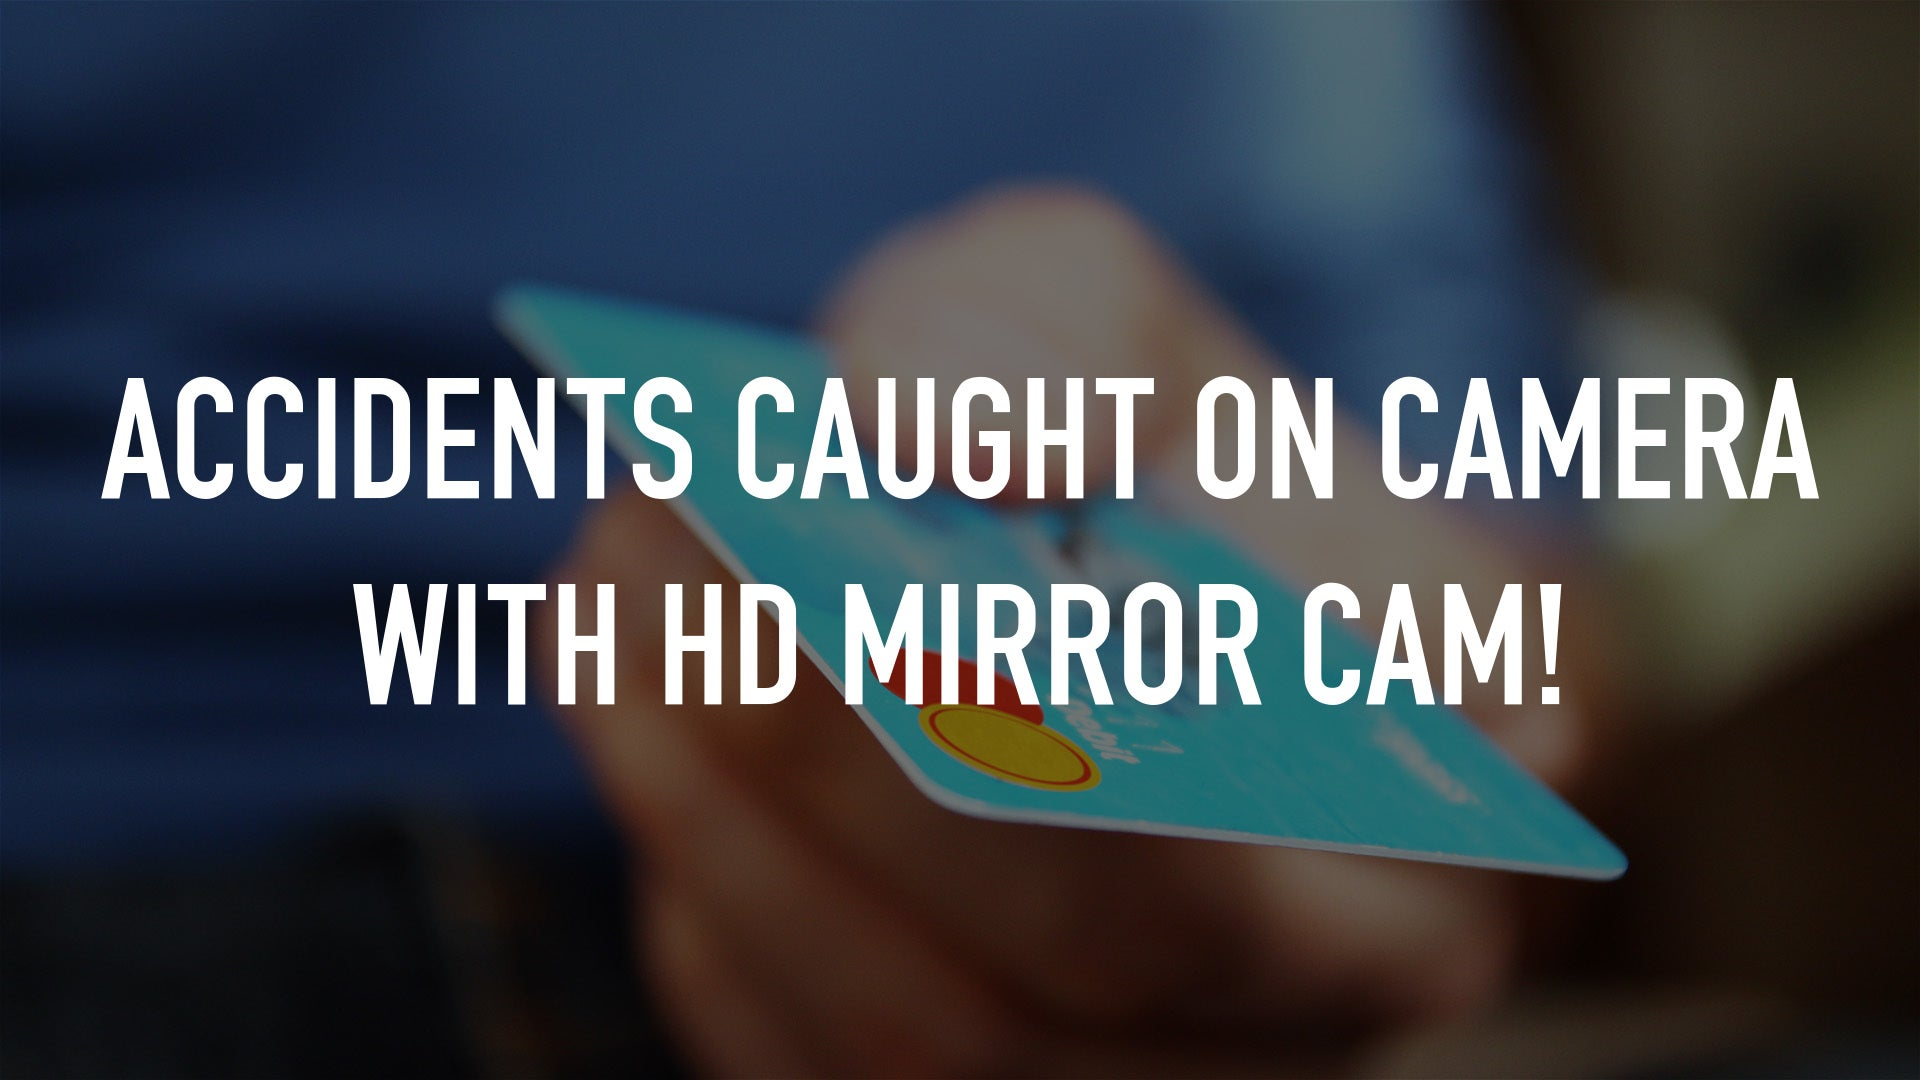 Accidents Caught on Camera with HD Mirror Cam!